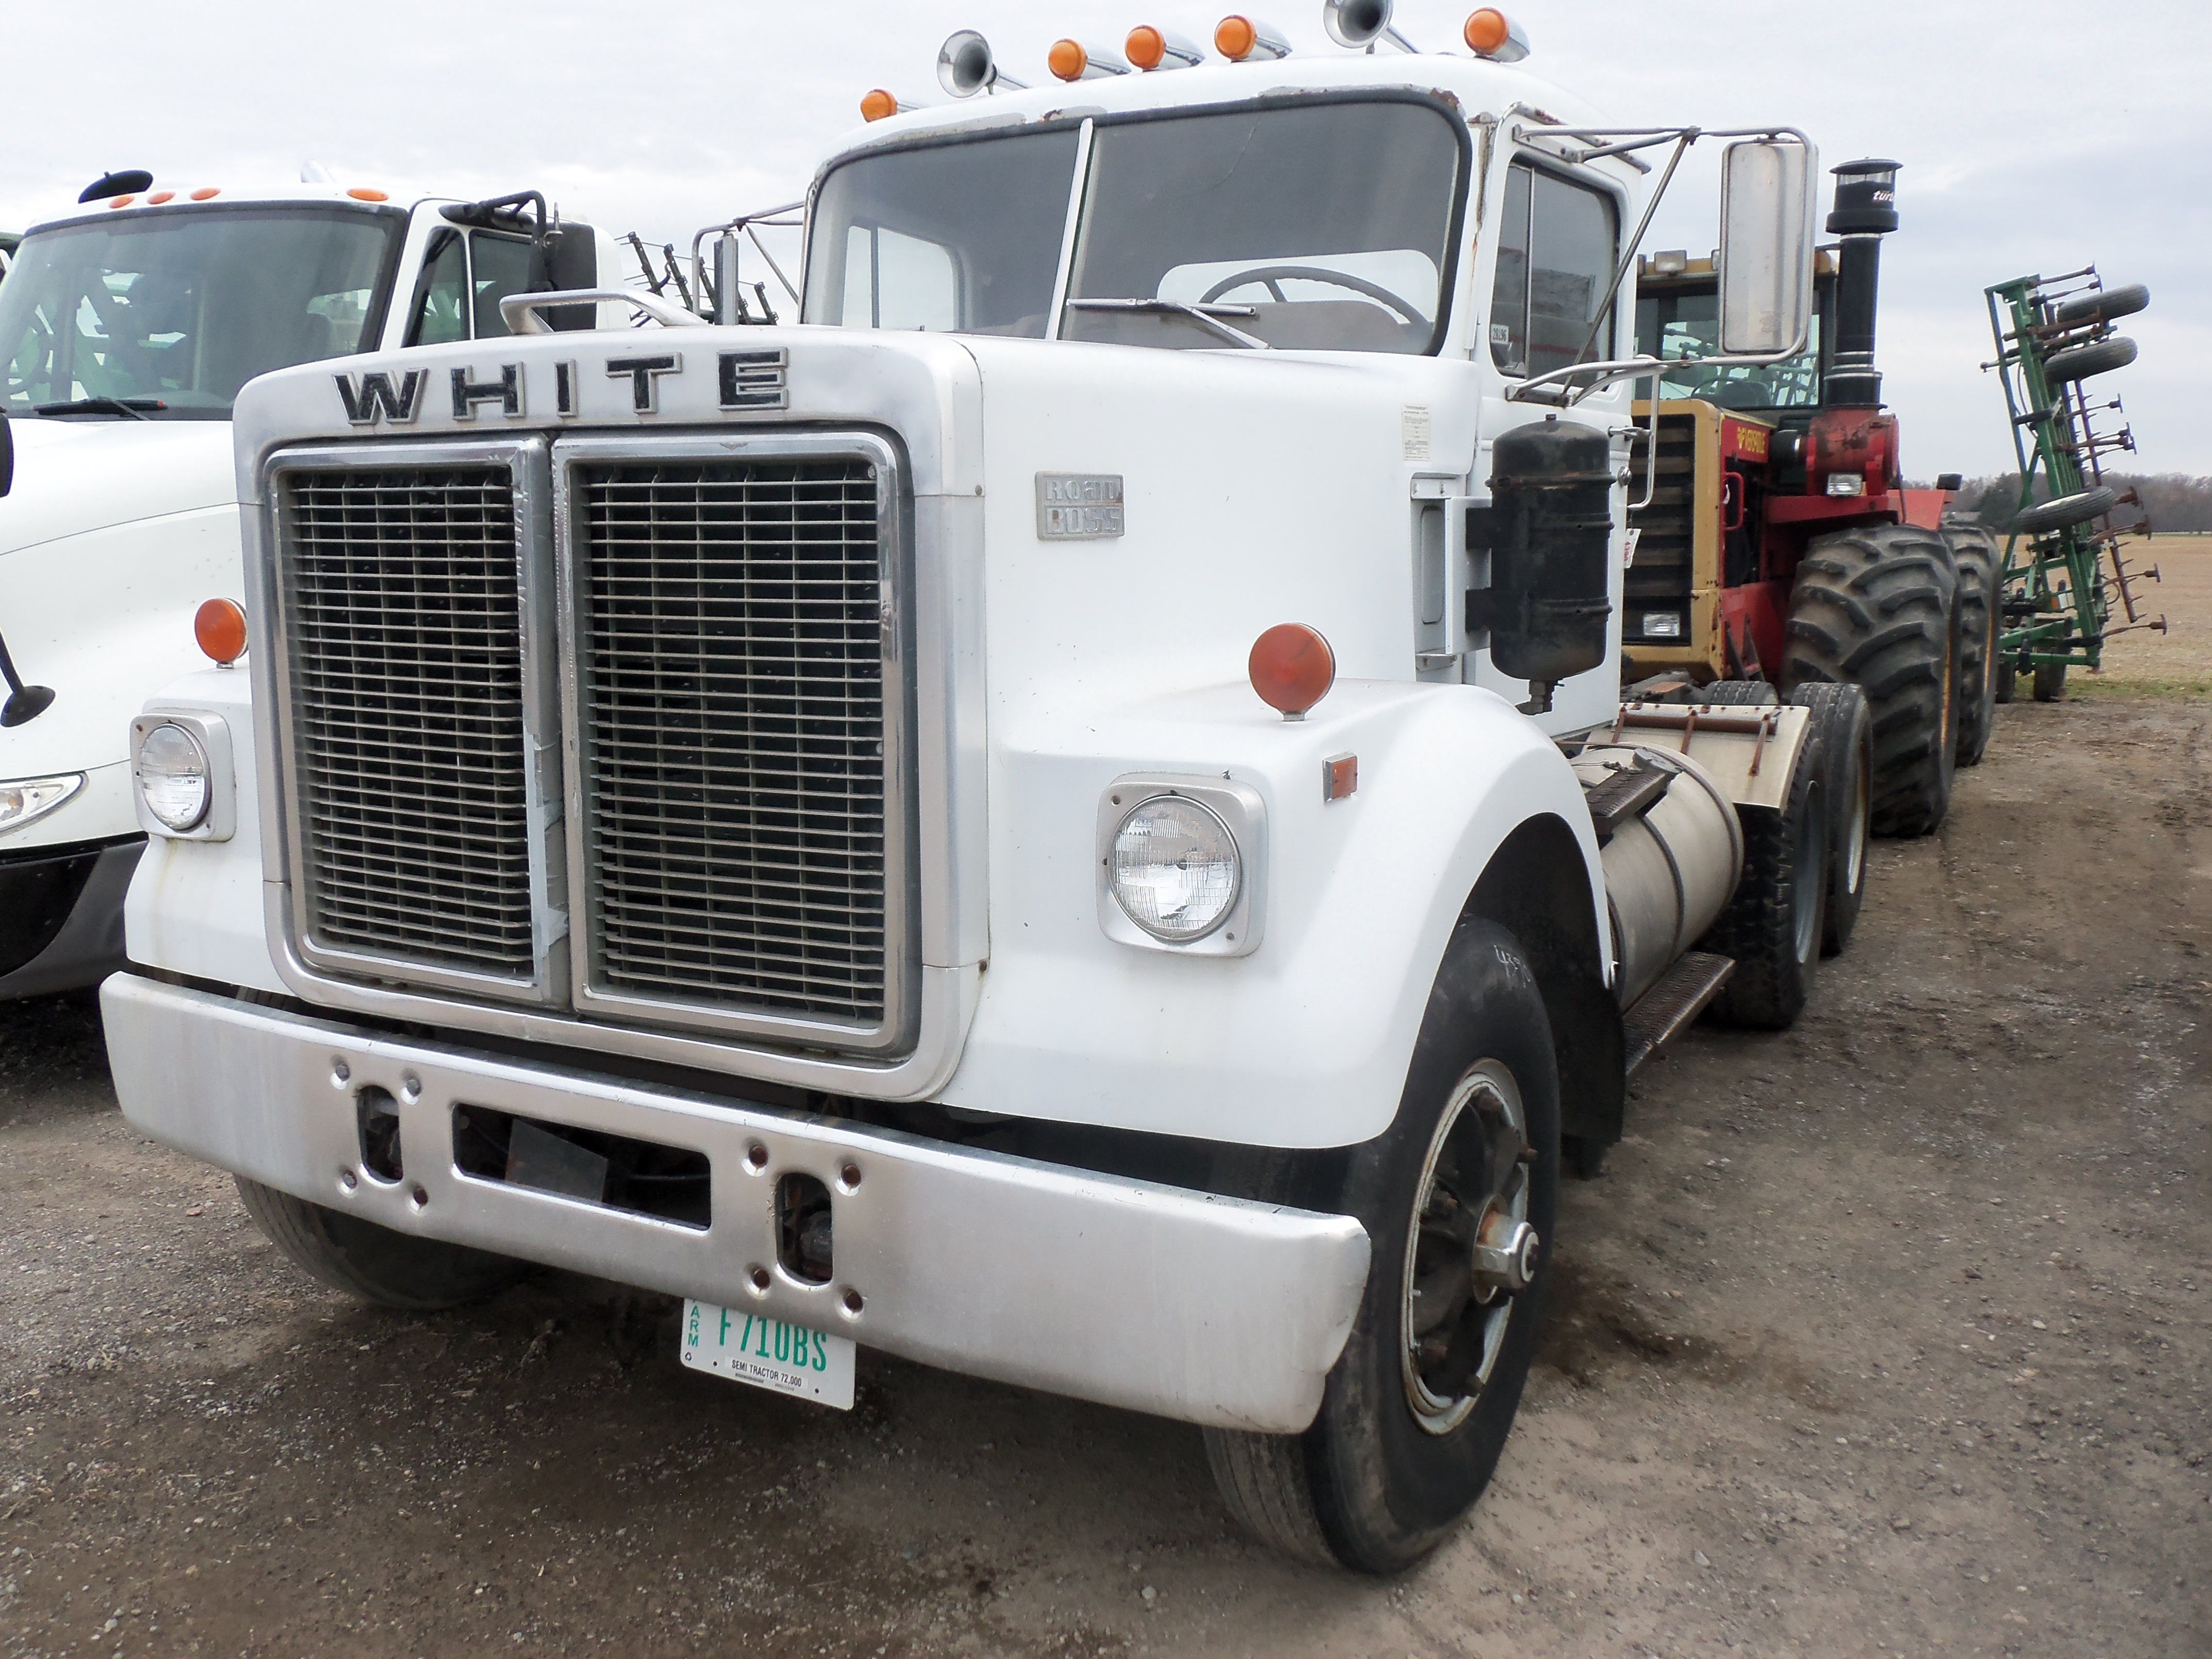 1976 white road boss semi tractor